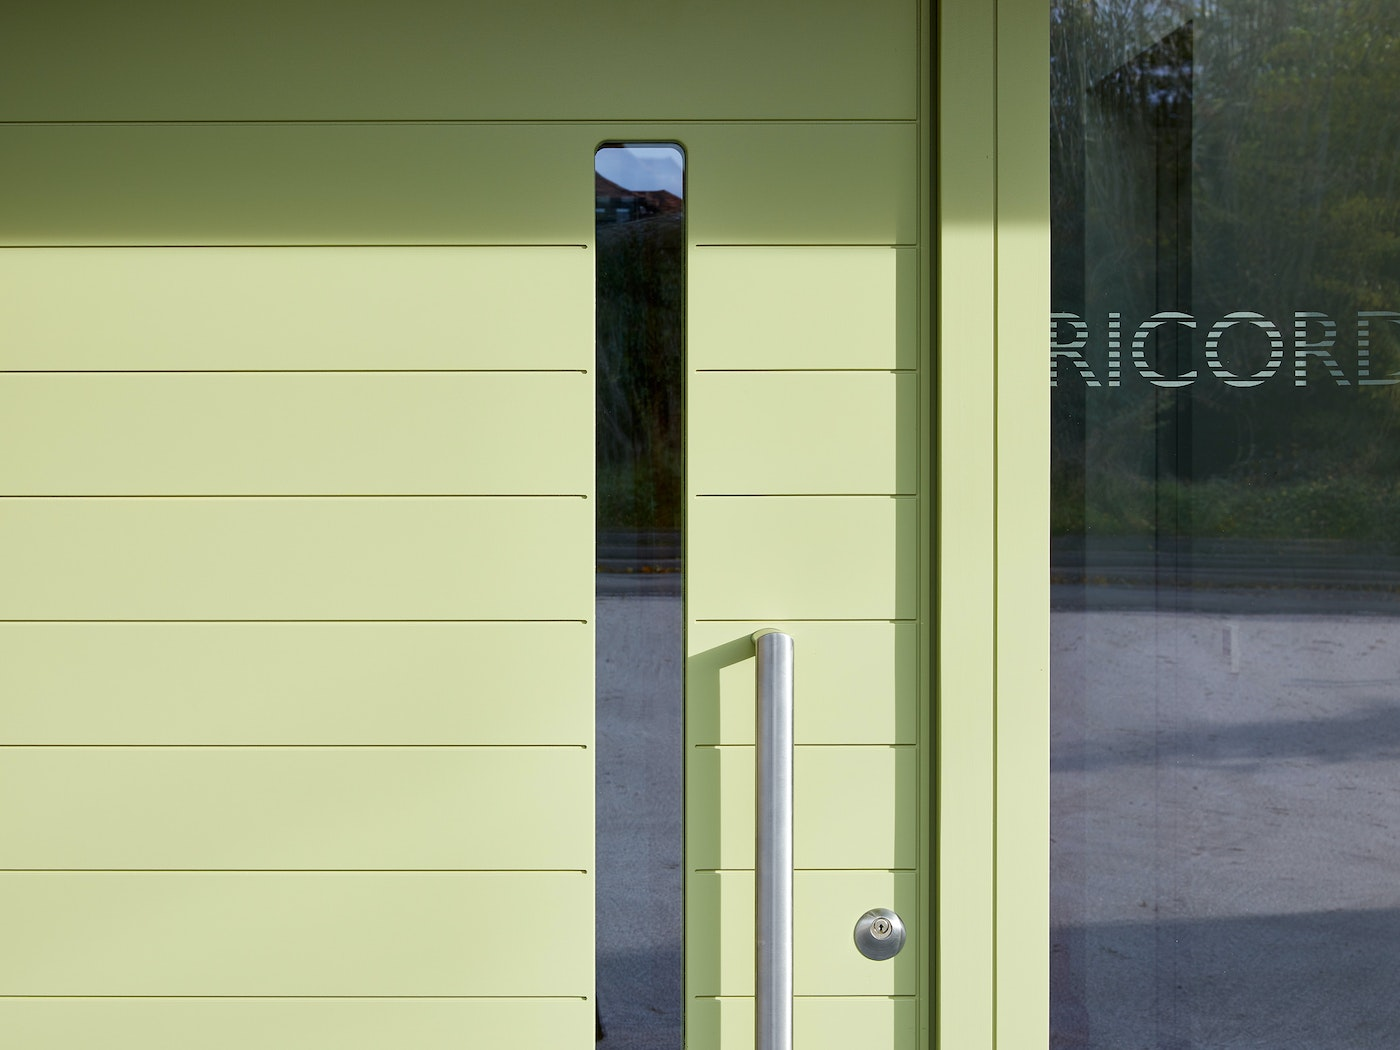 If you like the idea of glass panelling but are concerned about privacy, you can choose sandblasted glass instead